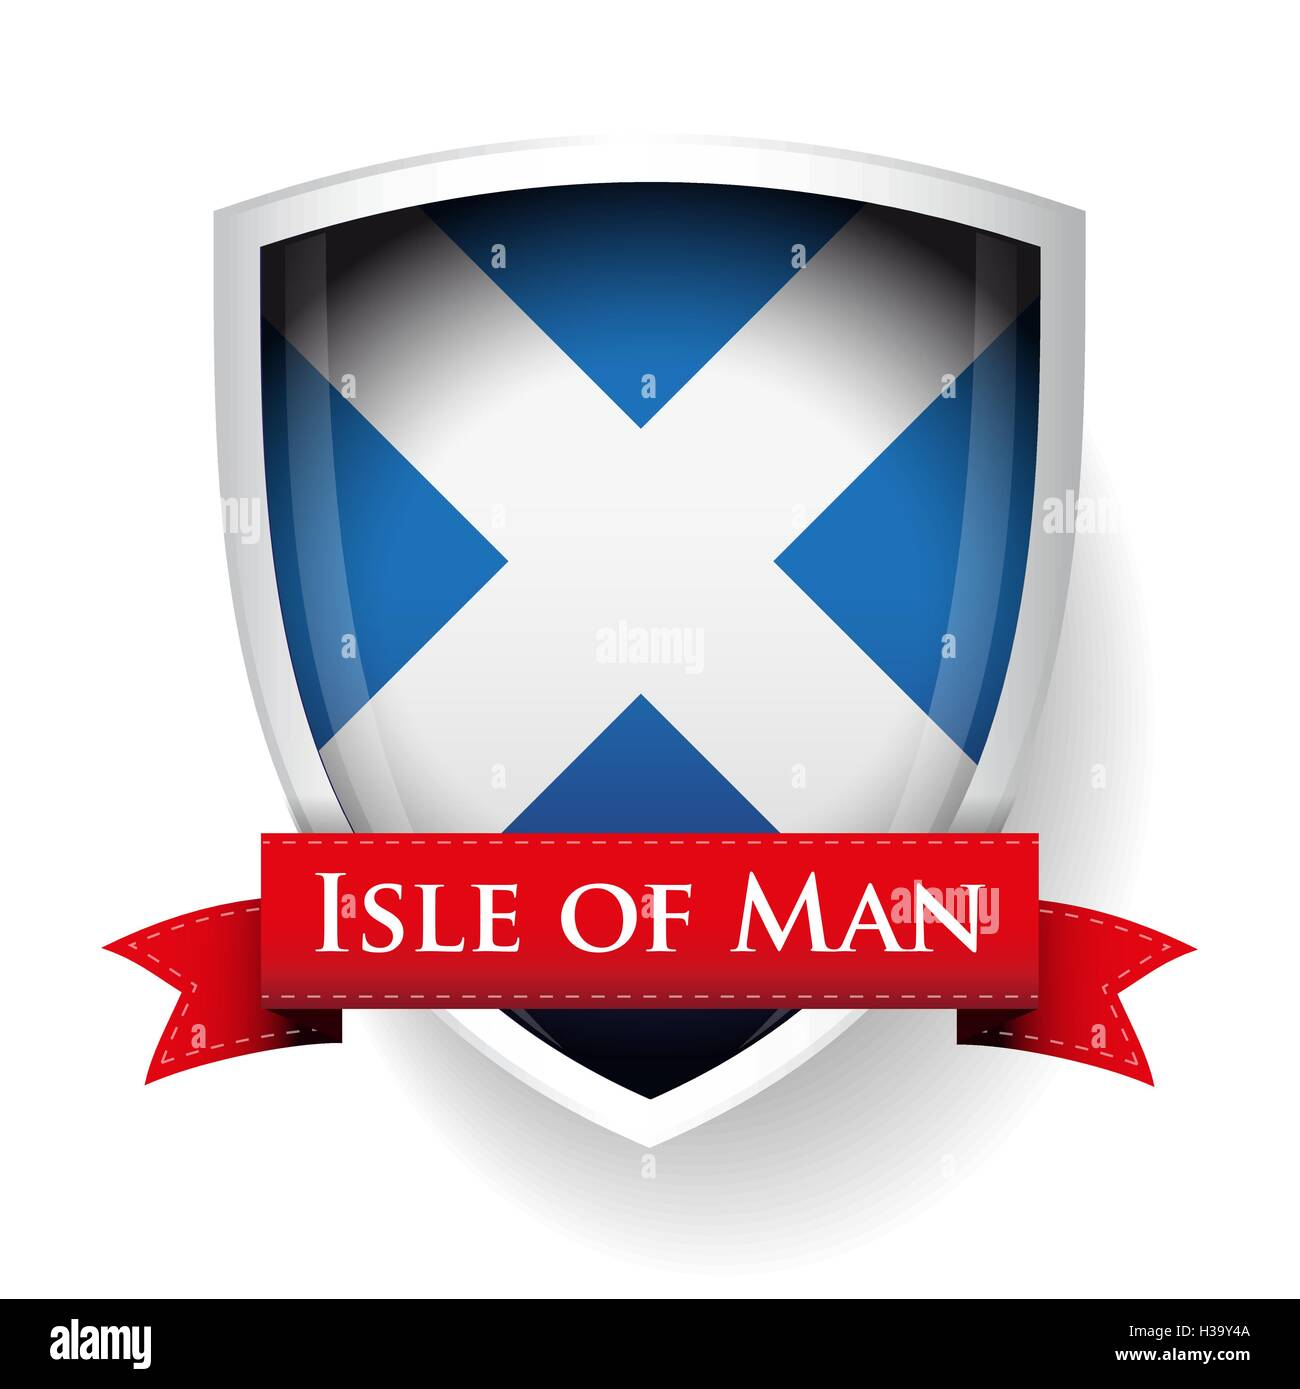 Scotland Flag with Isle of Man sign - Stock Vector